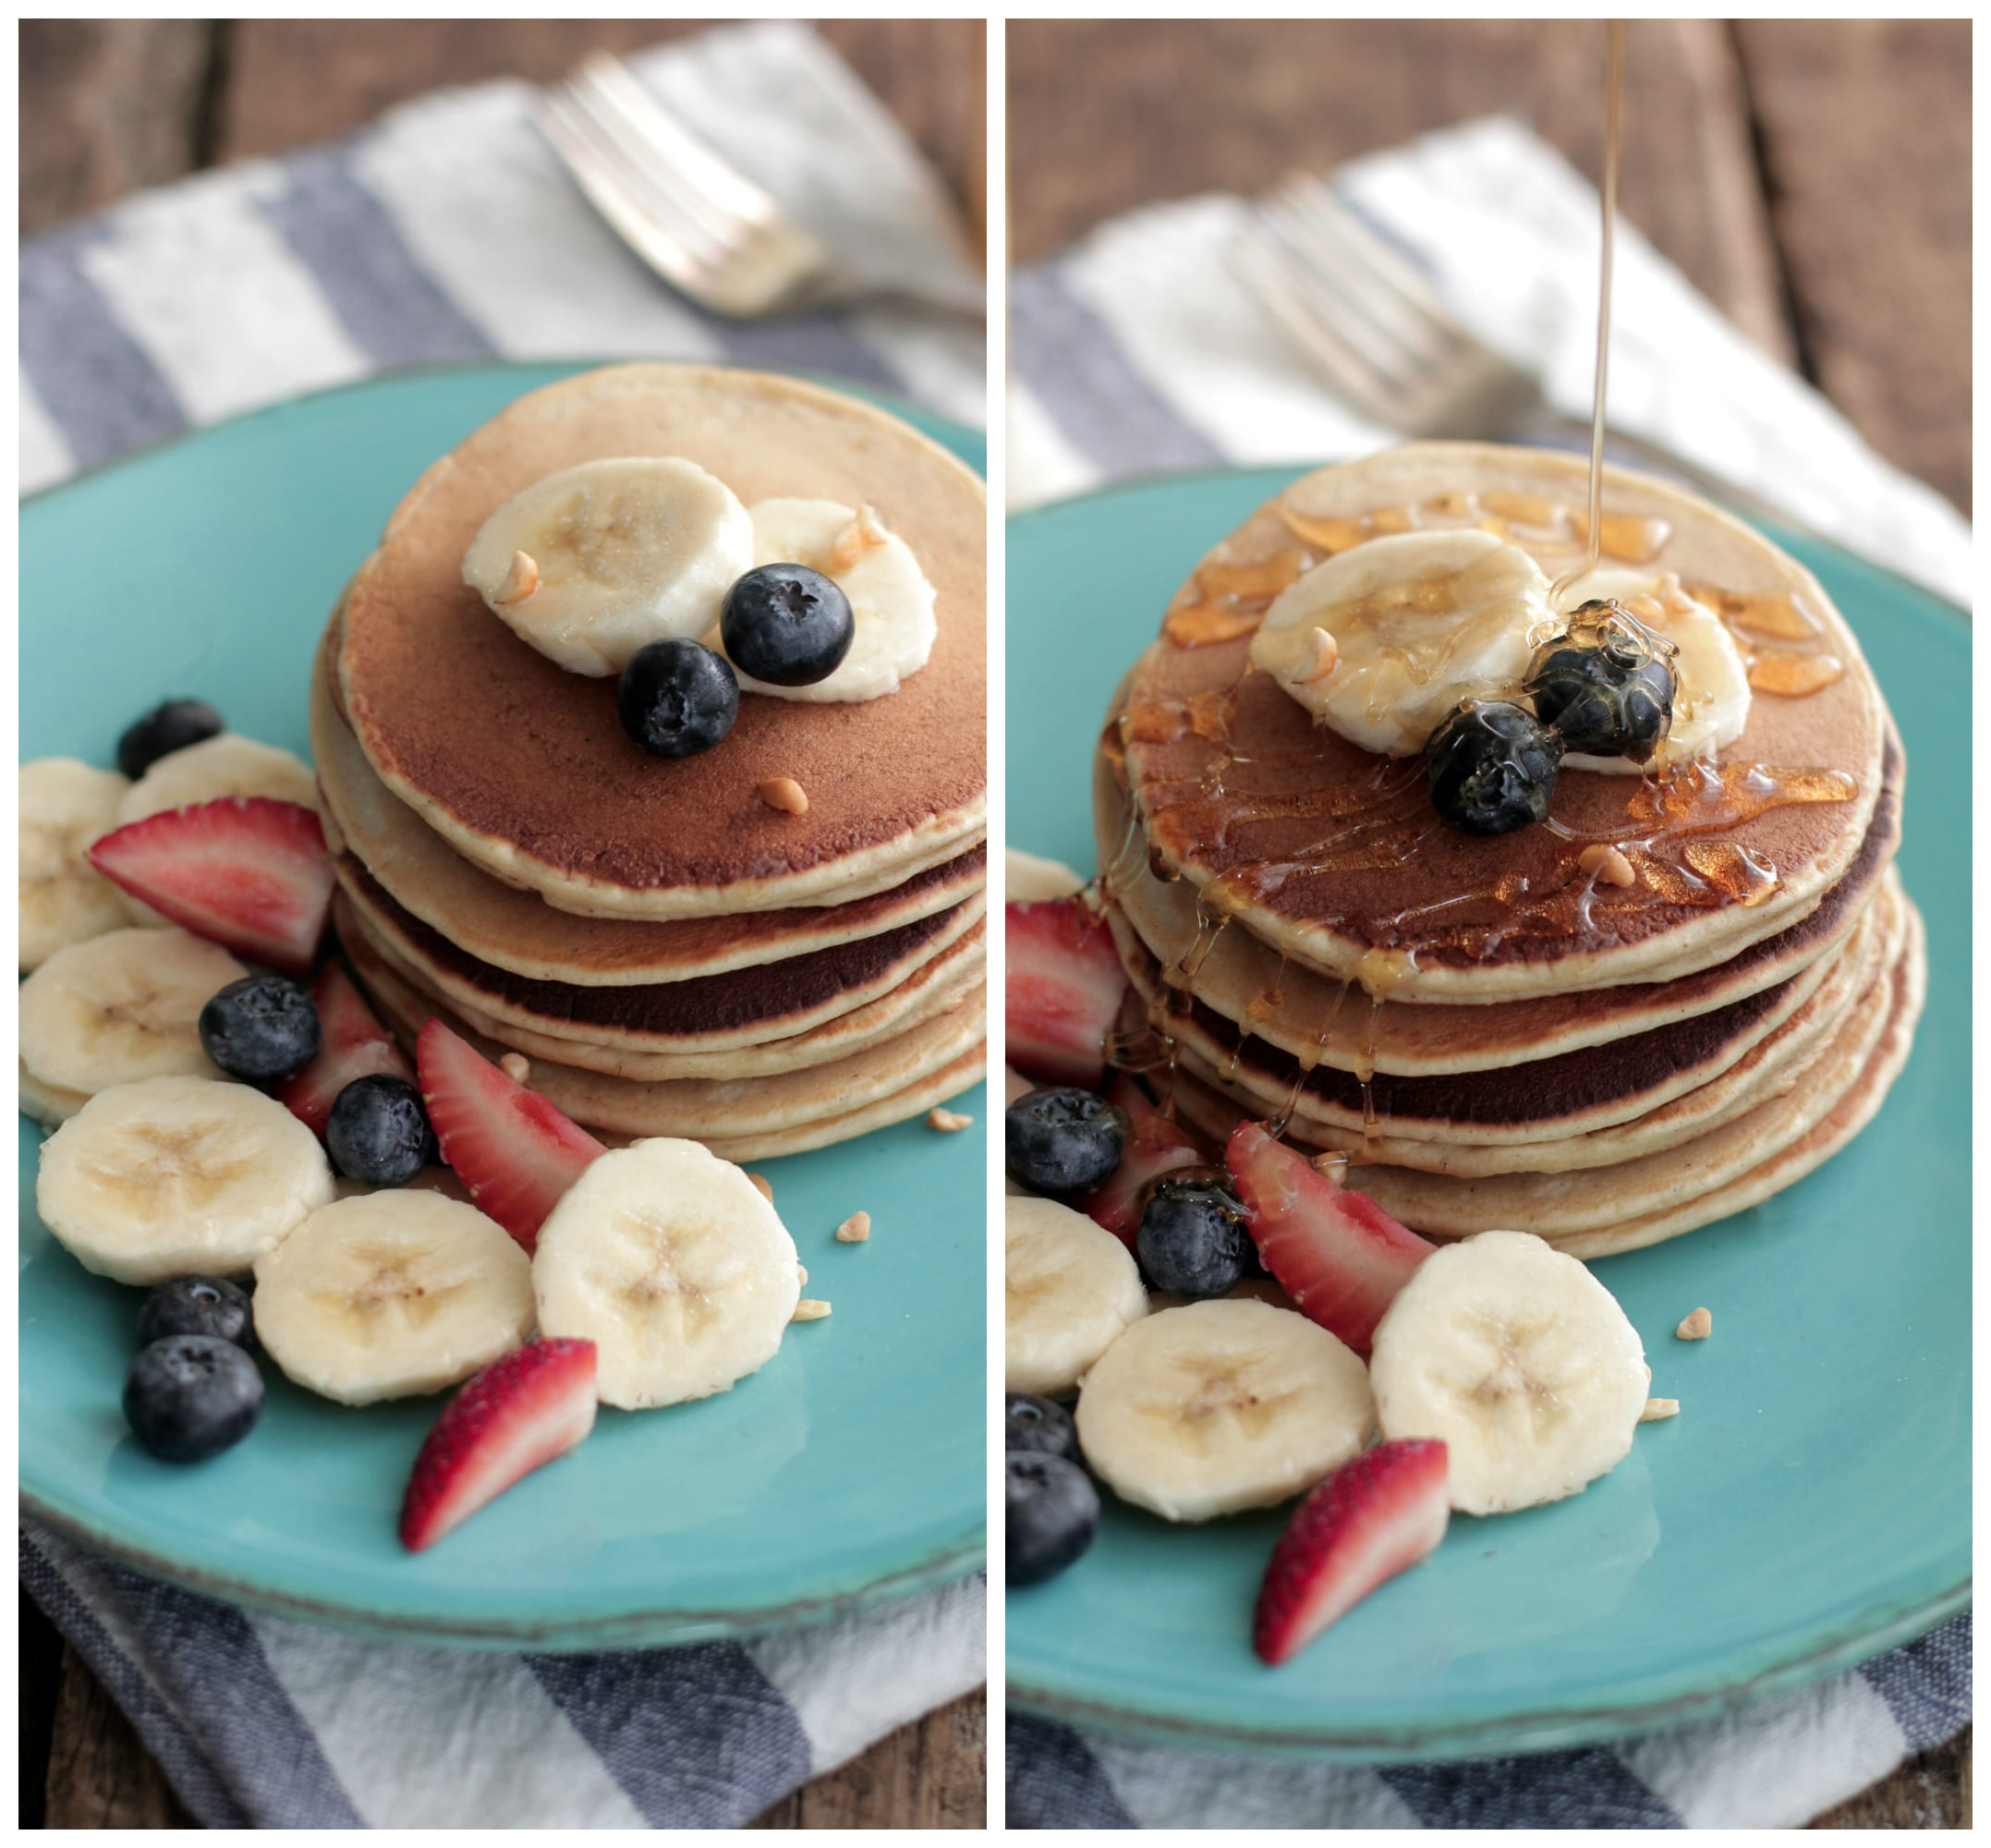 Freezer friendly whole grain banana pancakes in blender. These pancakes are not your average morning stack.